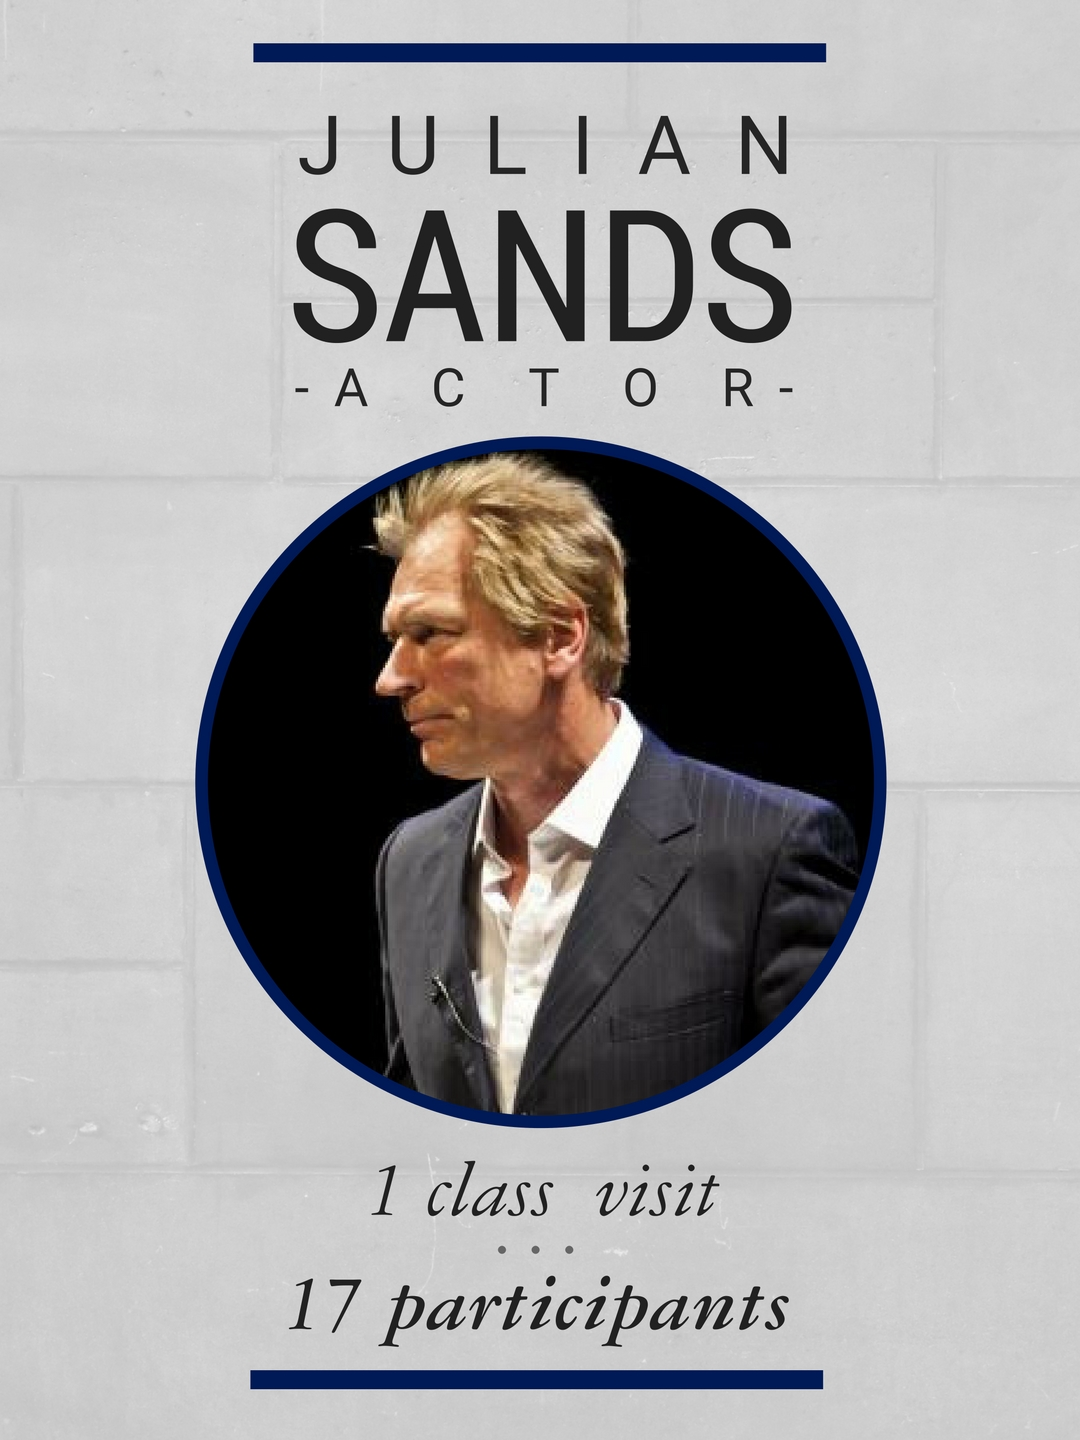 During his time on campus, actor Julian Sands visited a class of 17